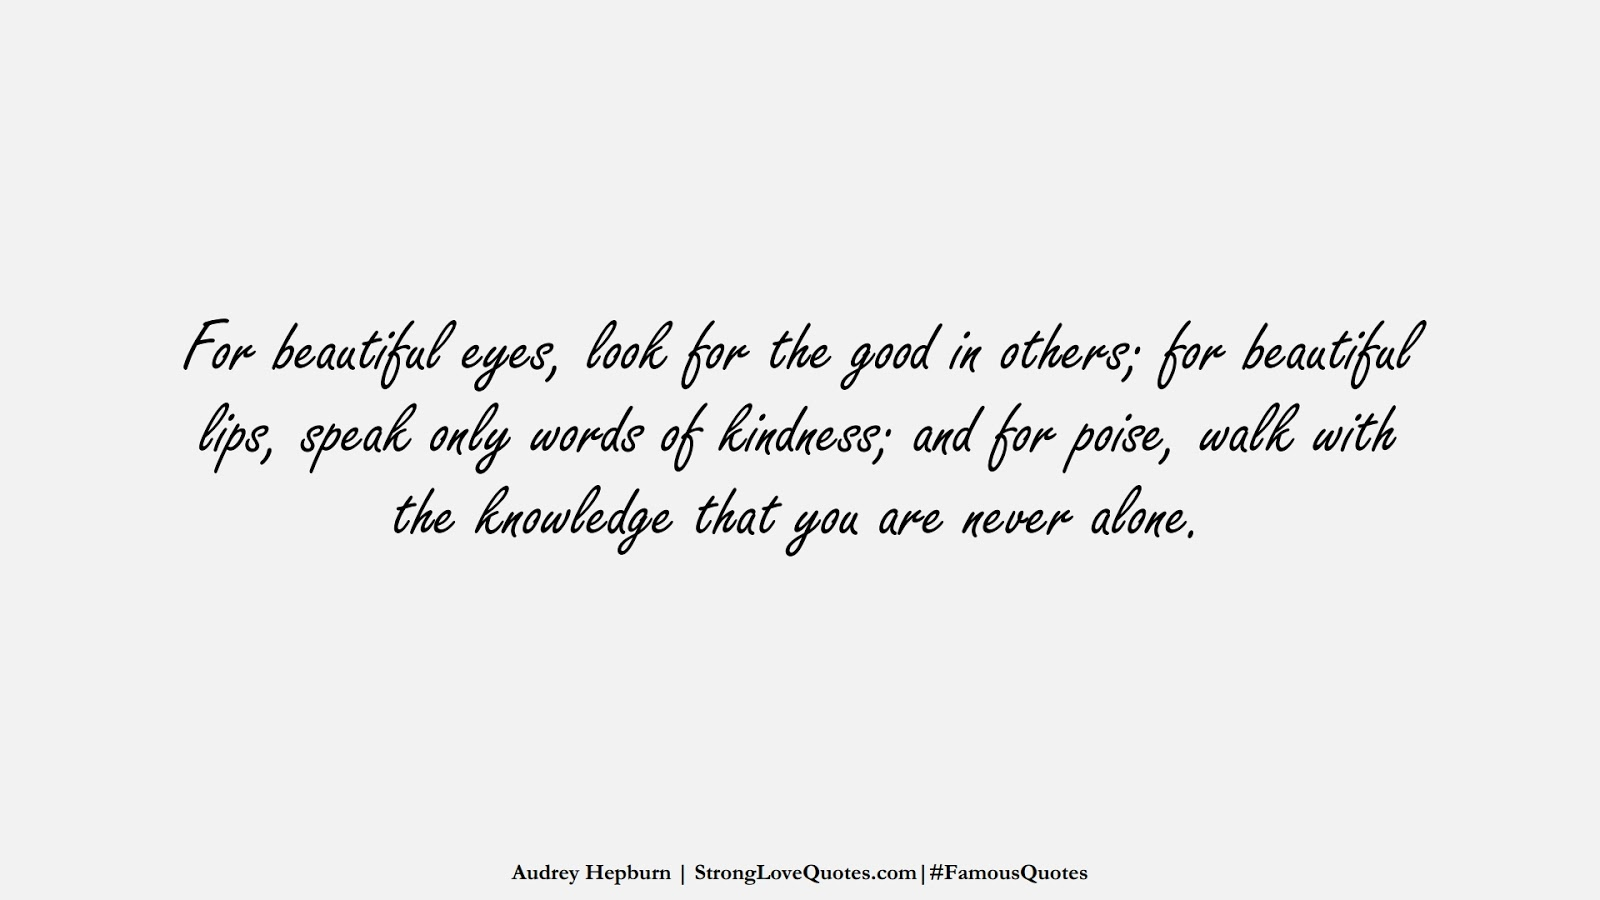 For beautiful eyes, look for the good in others; for beautiful lips, speak only words of kindness; and for poise, walk with the knowledge that you are never alone. (Audrey Hepburn);  #FamousQuotes